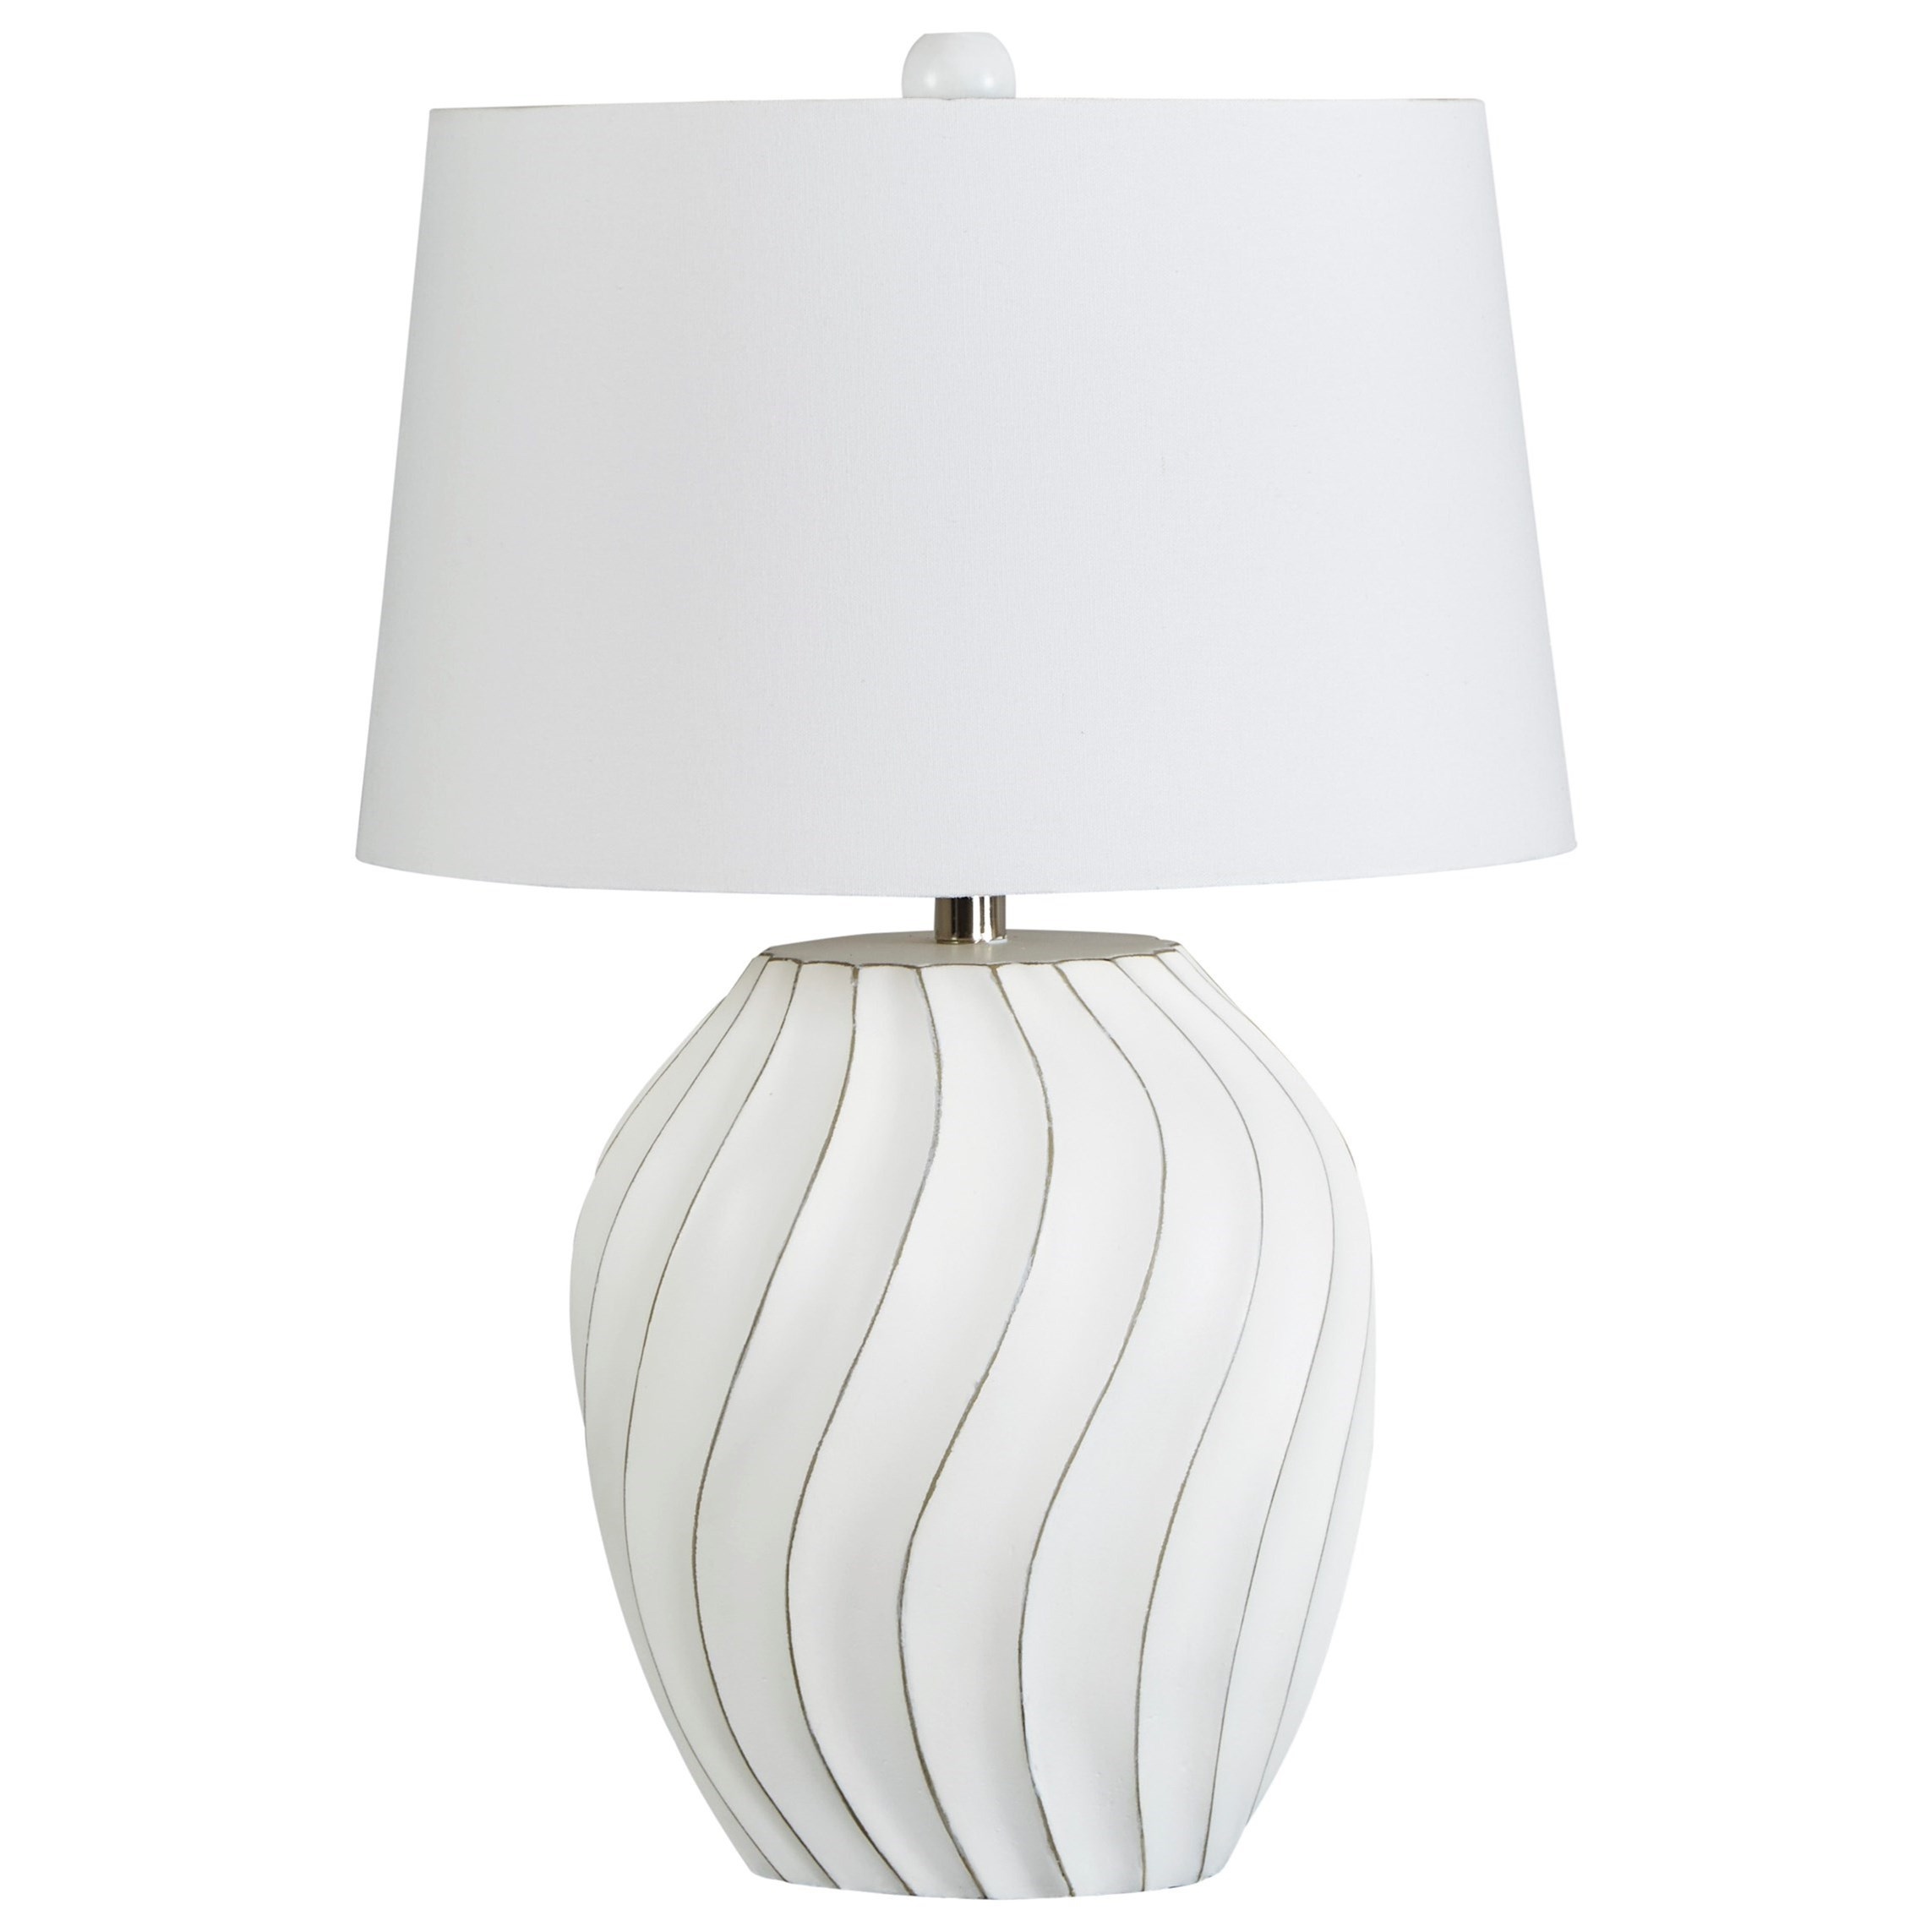 Lamps - Contemporary Hidago White Paper Table Lamp by Signature at Walker's Furniture